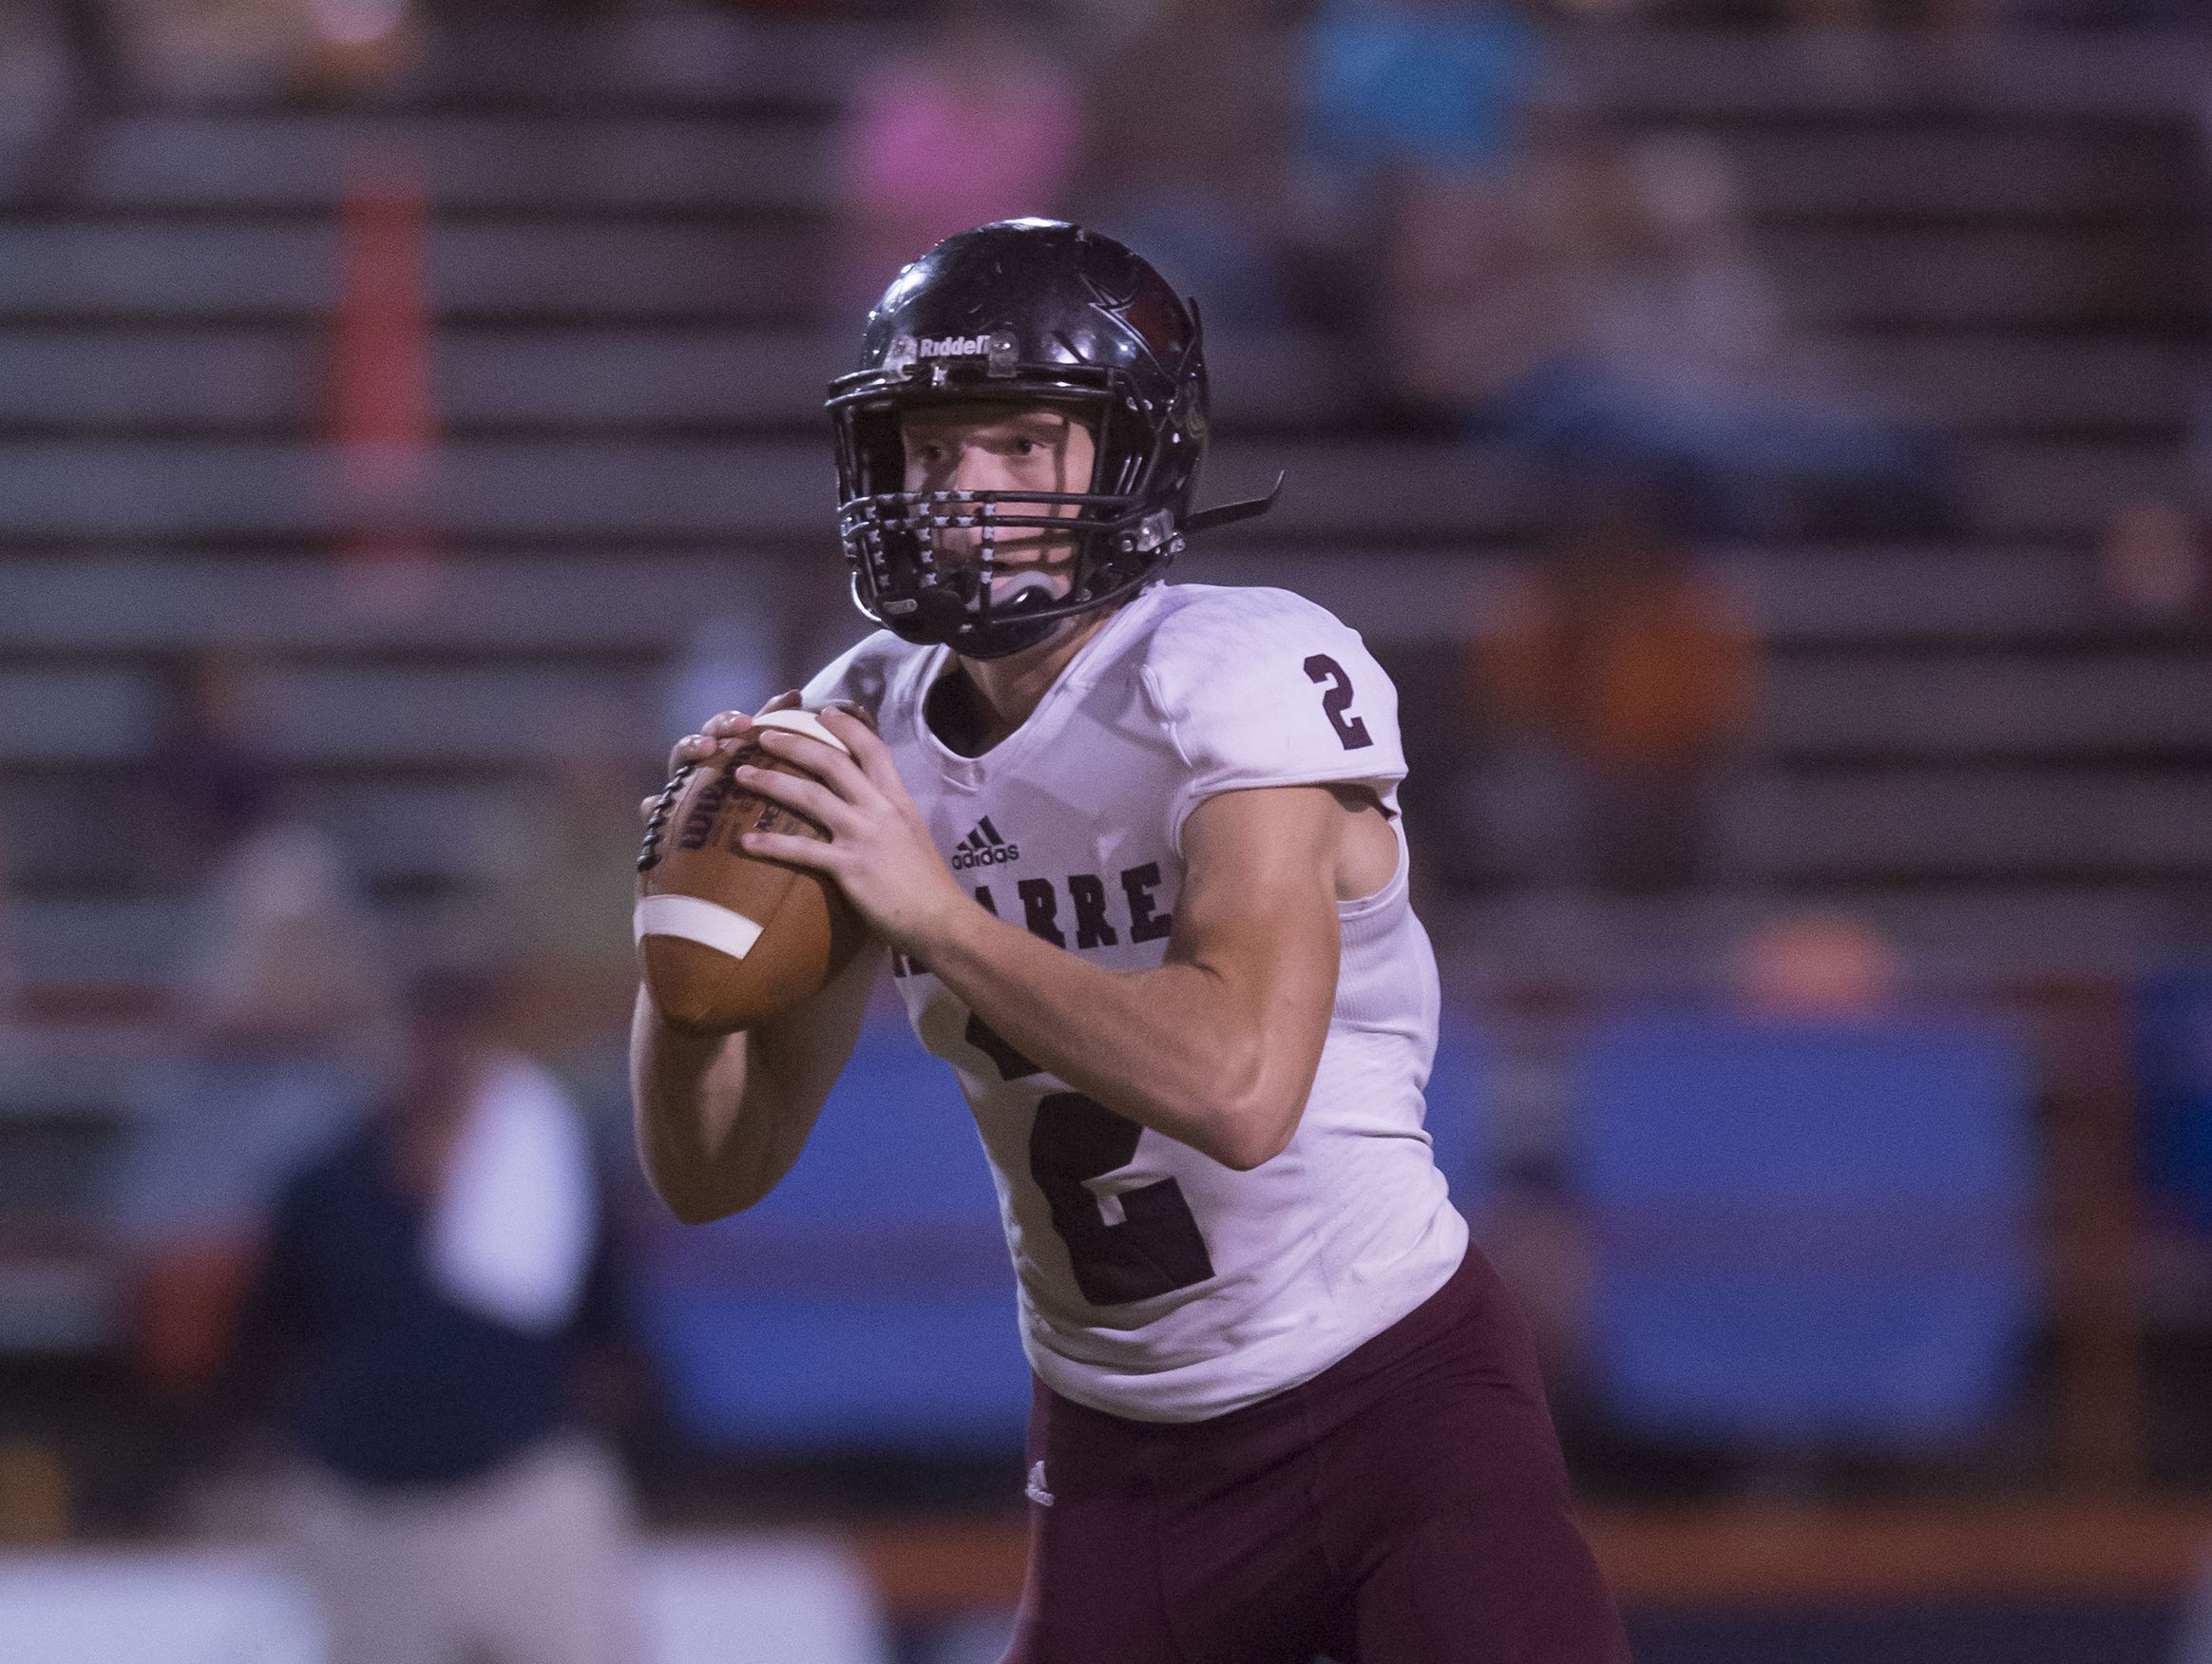 Navarre High School quarterback, Caine Adamson, (No. 2) rolls out of the pocket in search of an open receiver during Friday night's game against Escambia High School.